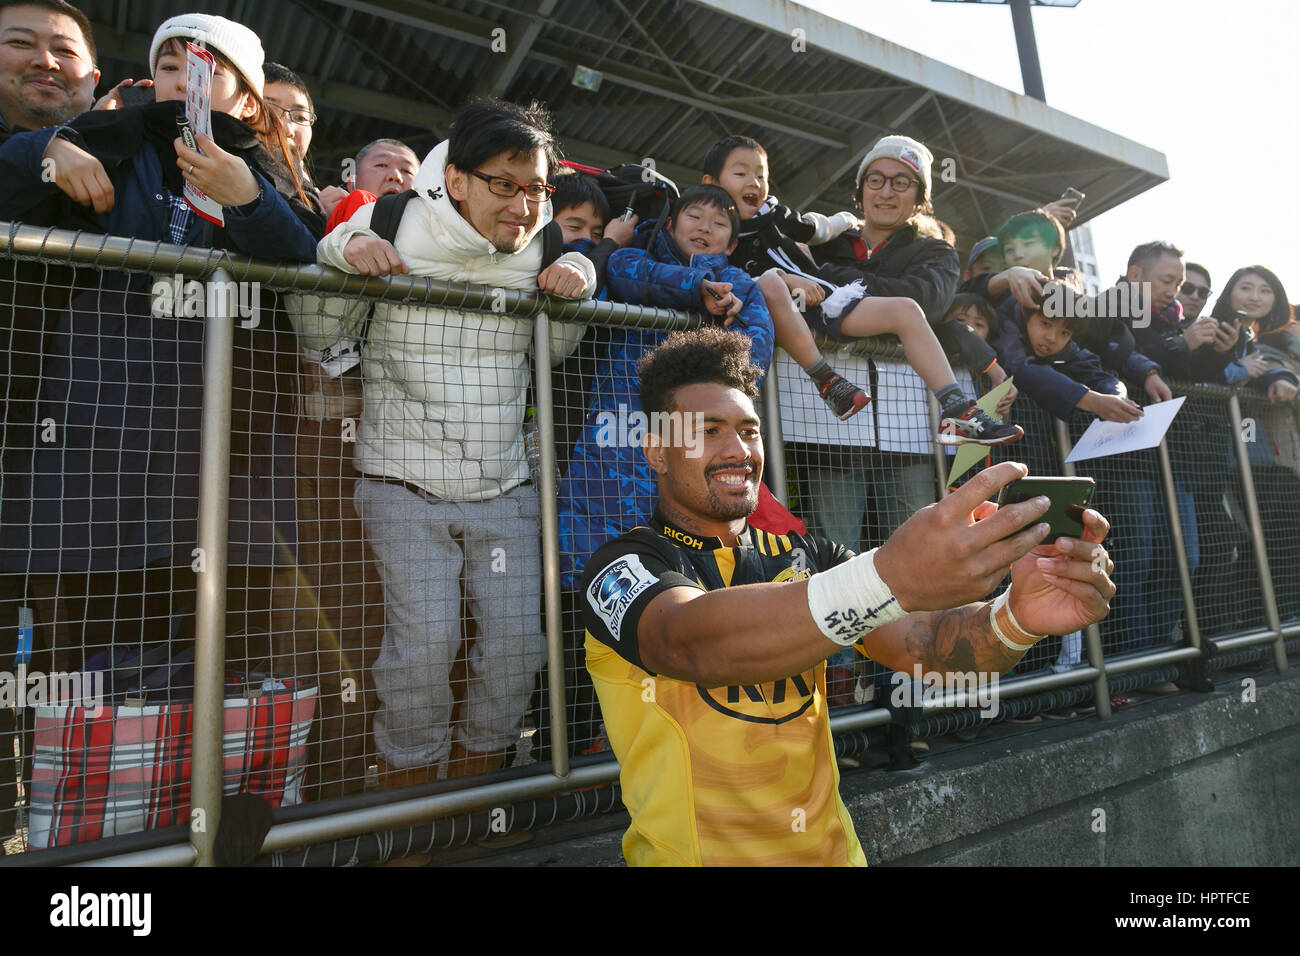 Ardie Savea of the Hurricanes takes a selfie with fans during the HITO-Communications Sunwolves vs Hurricanes in - Stock Image